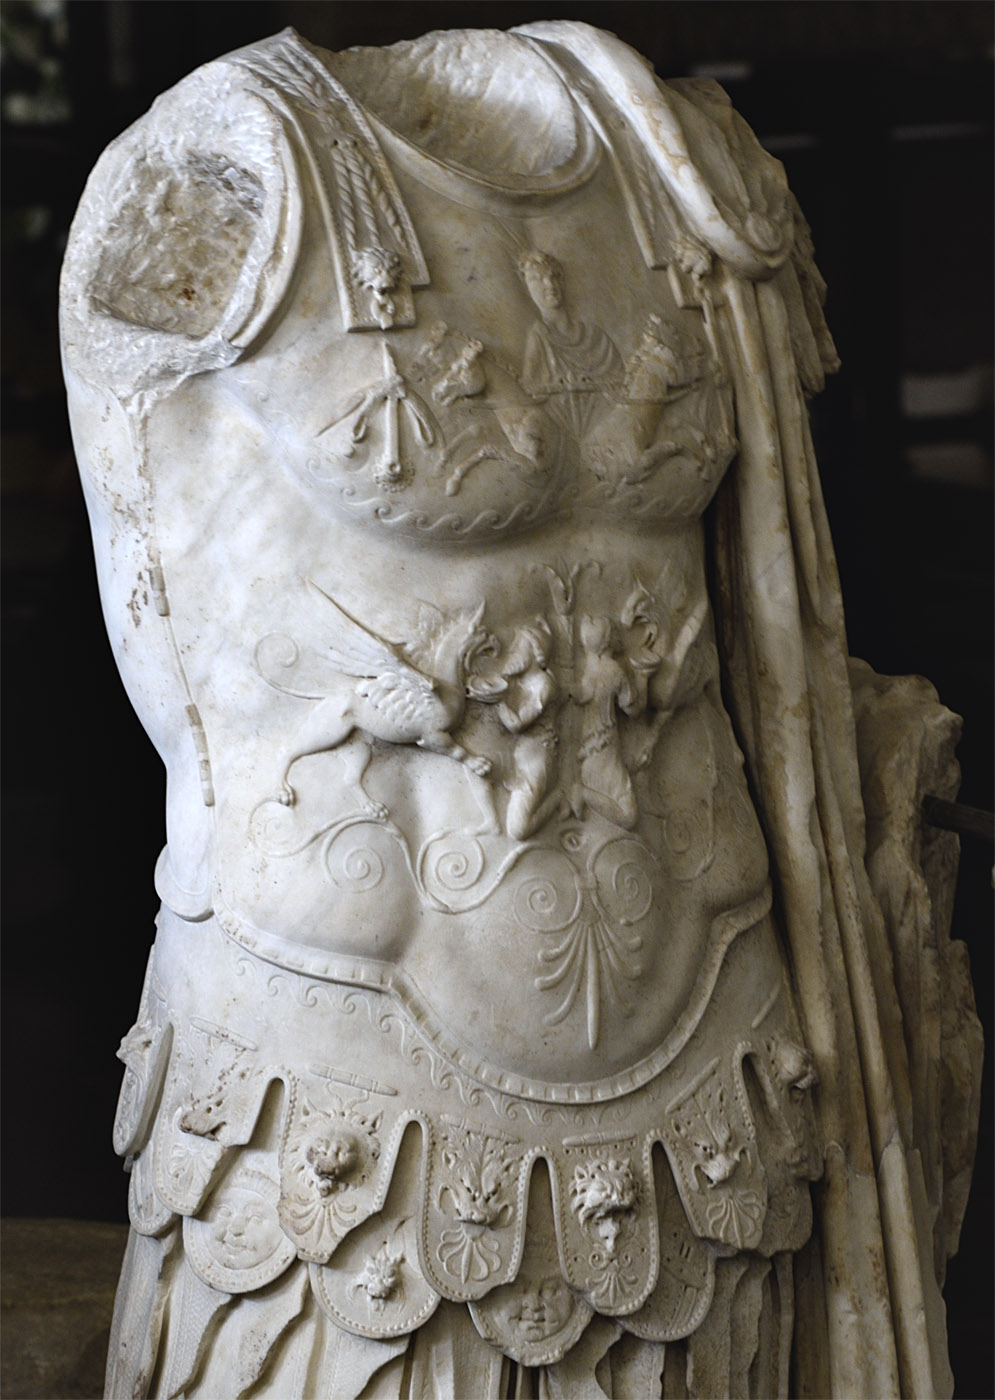 Statue of a general in armour (close-up). Marble. Age of Nero (54—68 CE). Inv. No. 9948. Rome, Vatican Museums, Gregorian Profane Museum